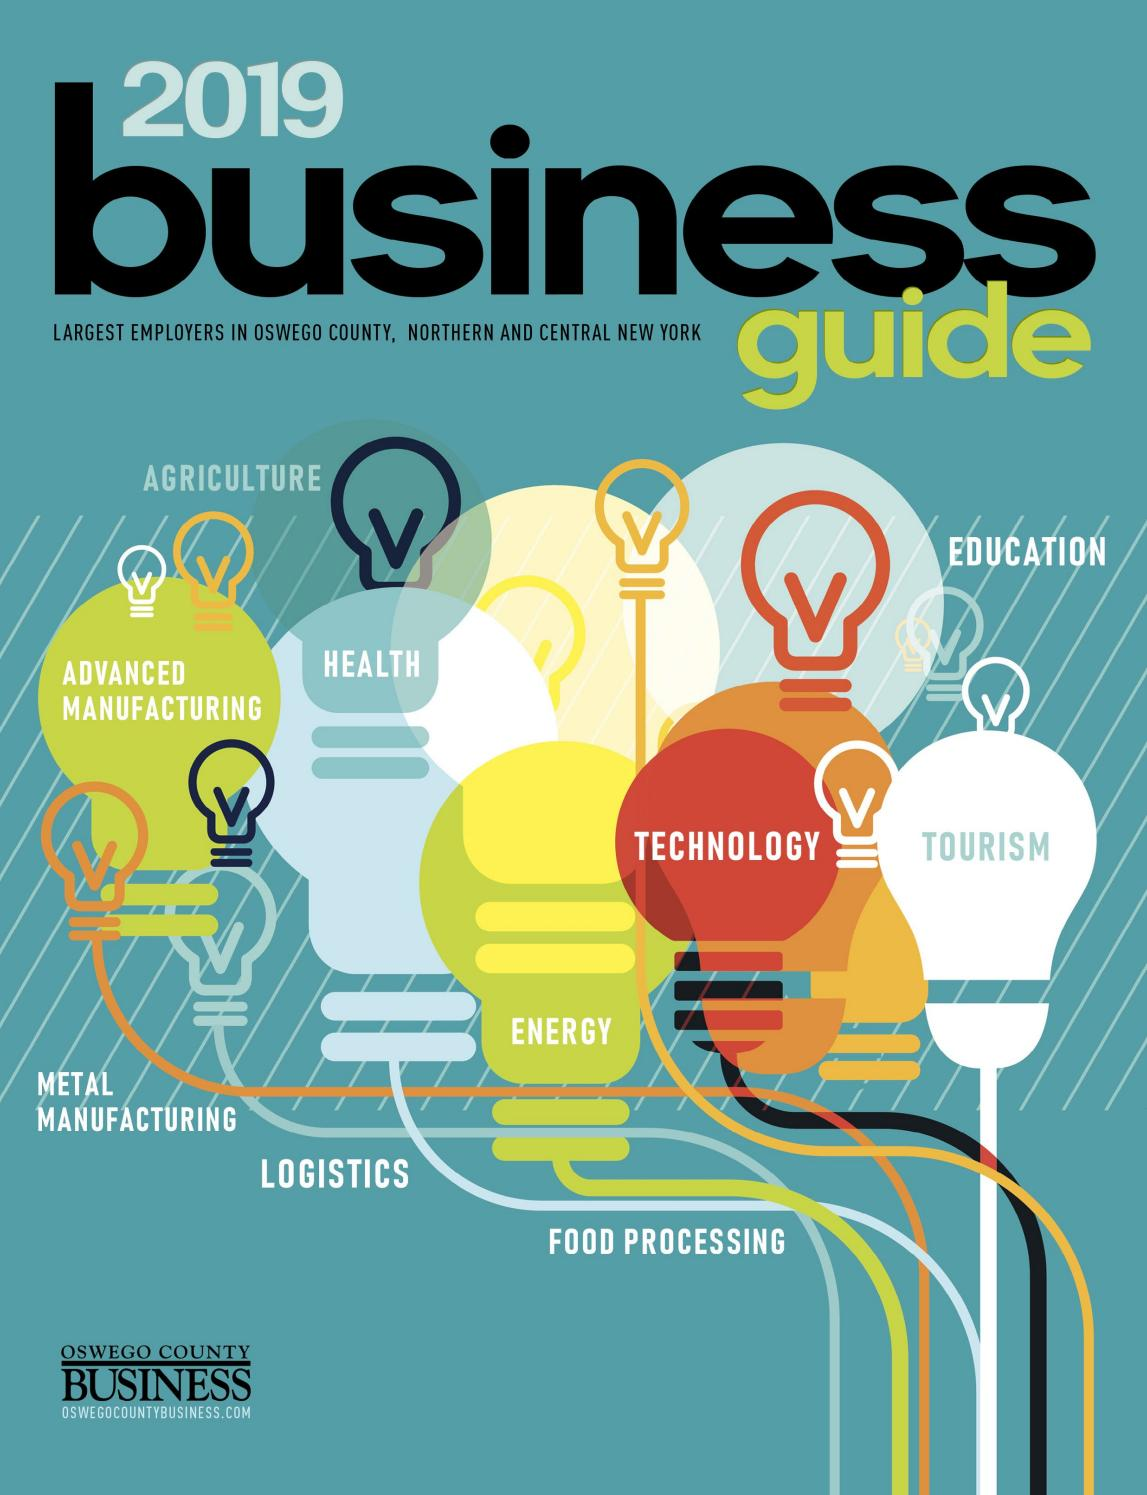 Business Guide 2019 by Wagner Dotto - issuu